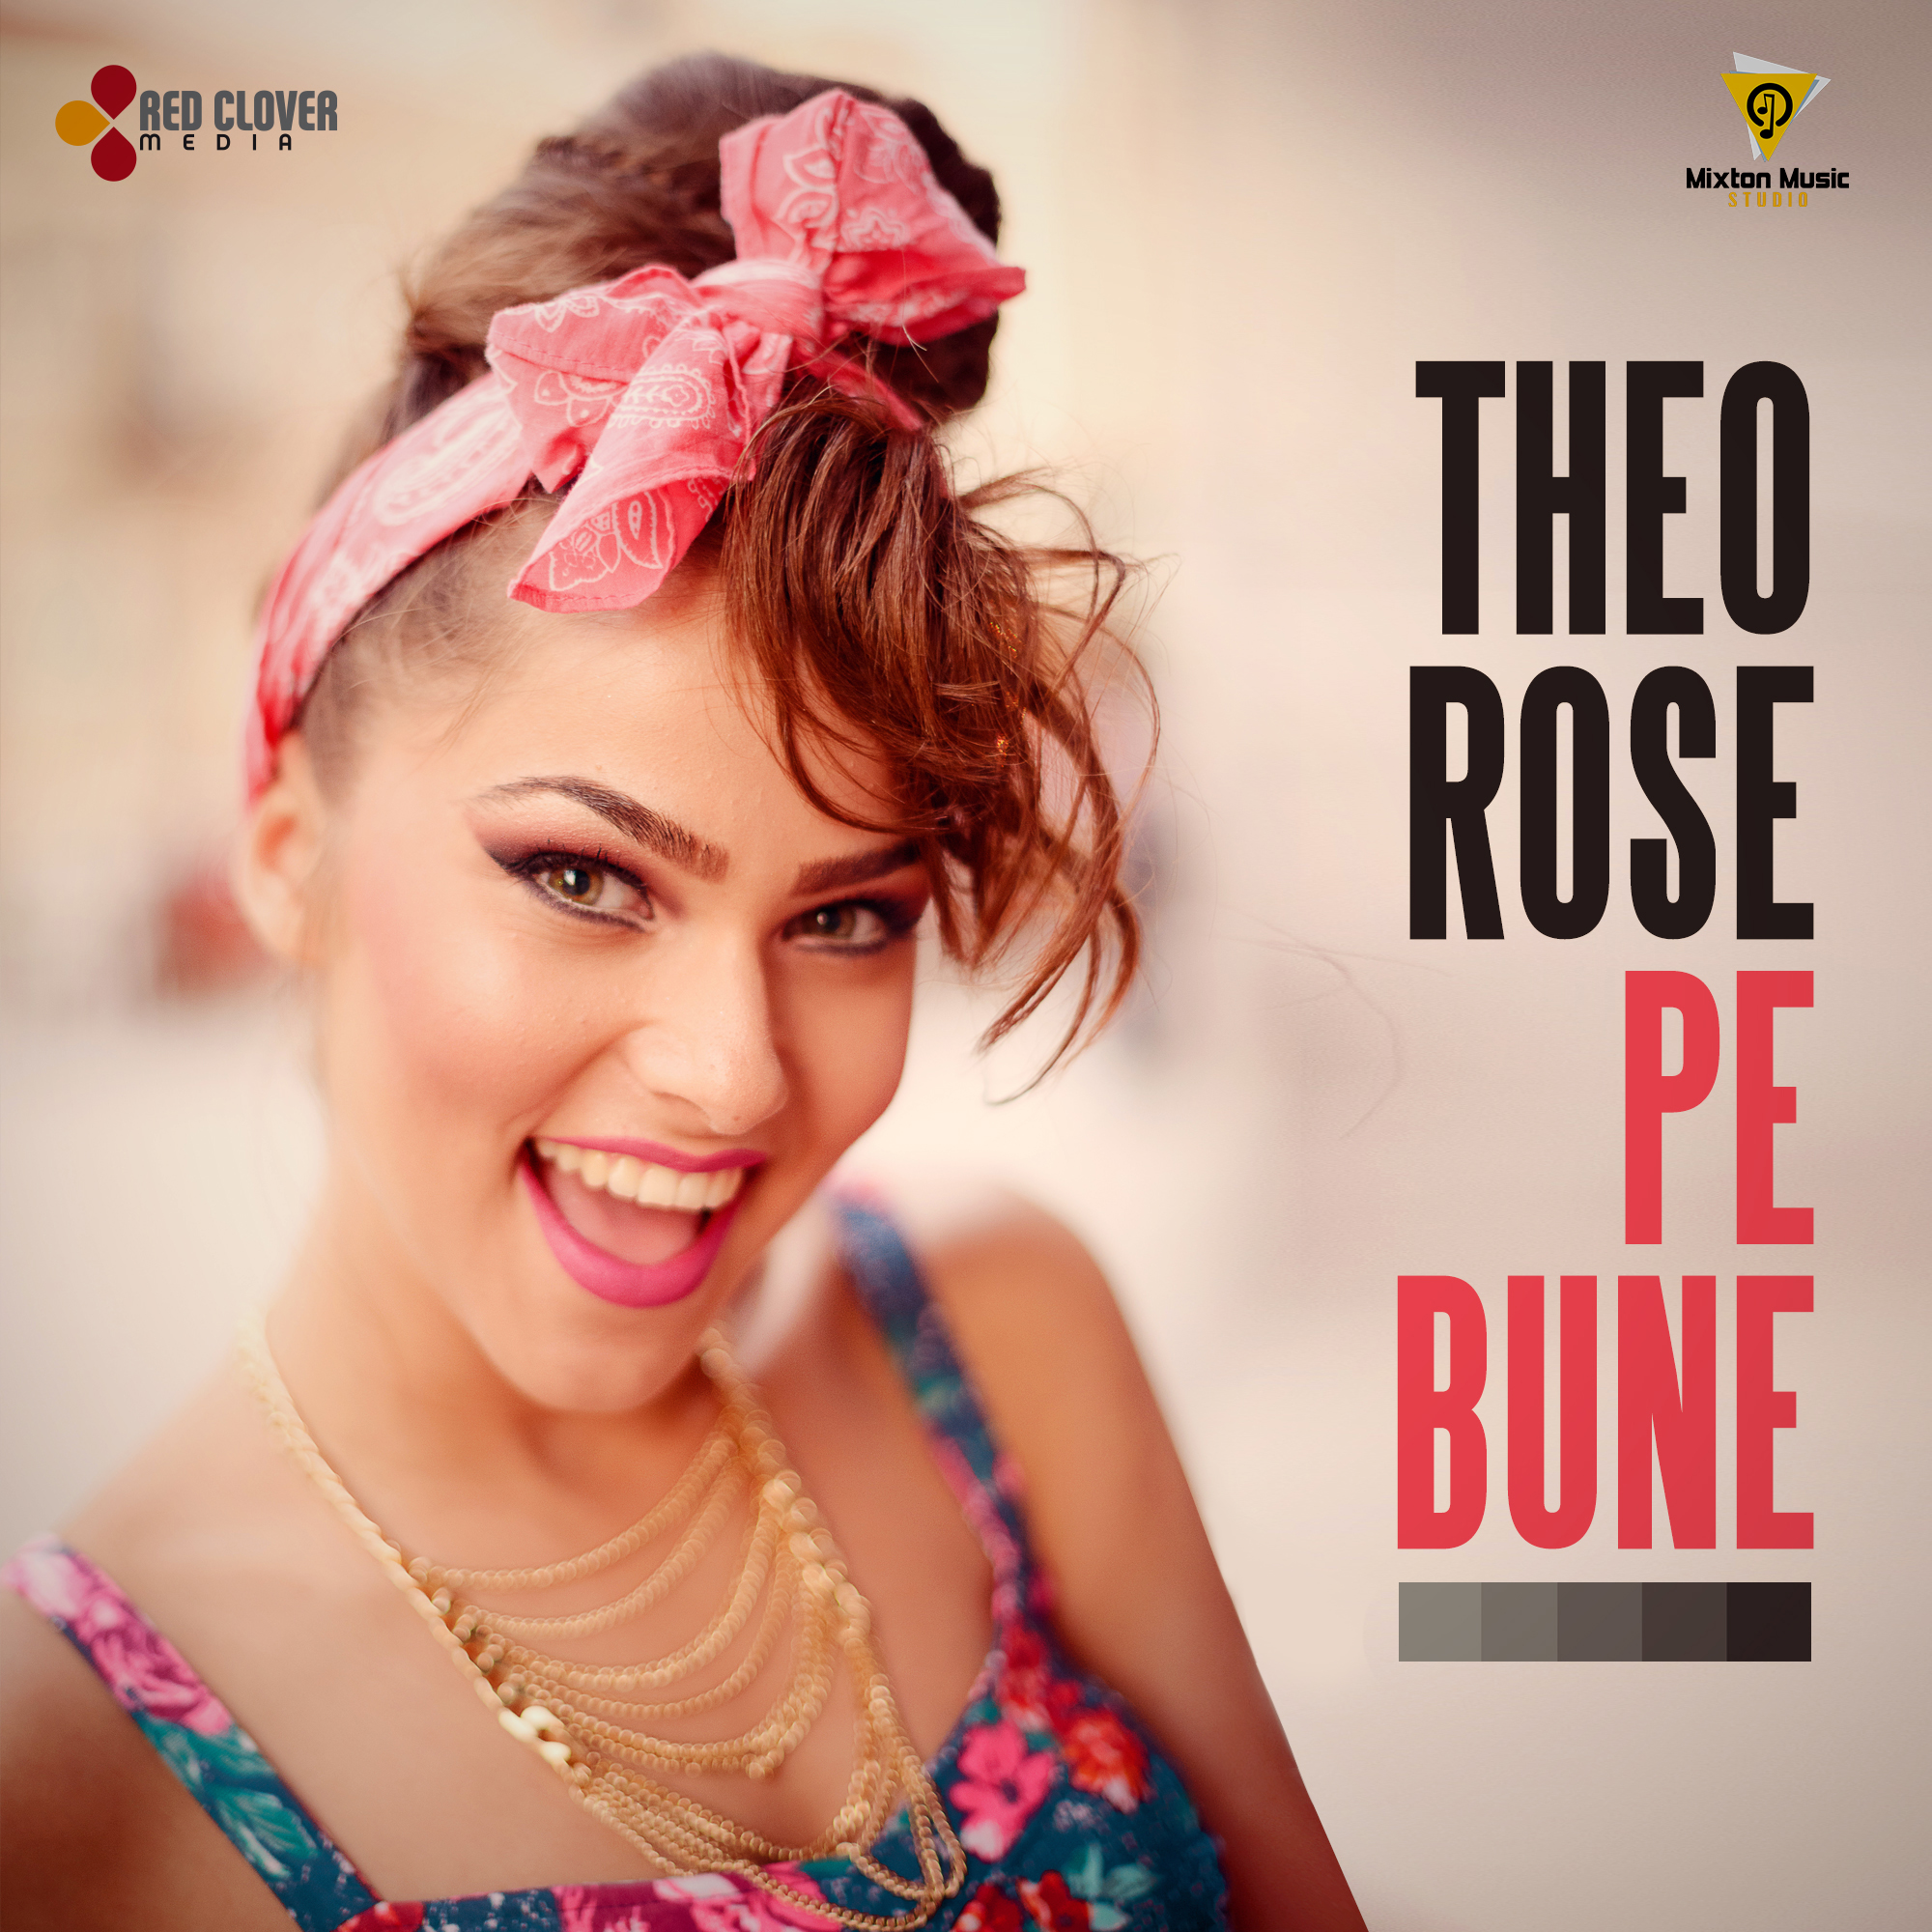 Download Theo Rose - Pe bune (Videoclip official)